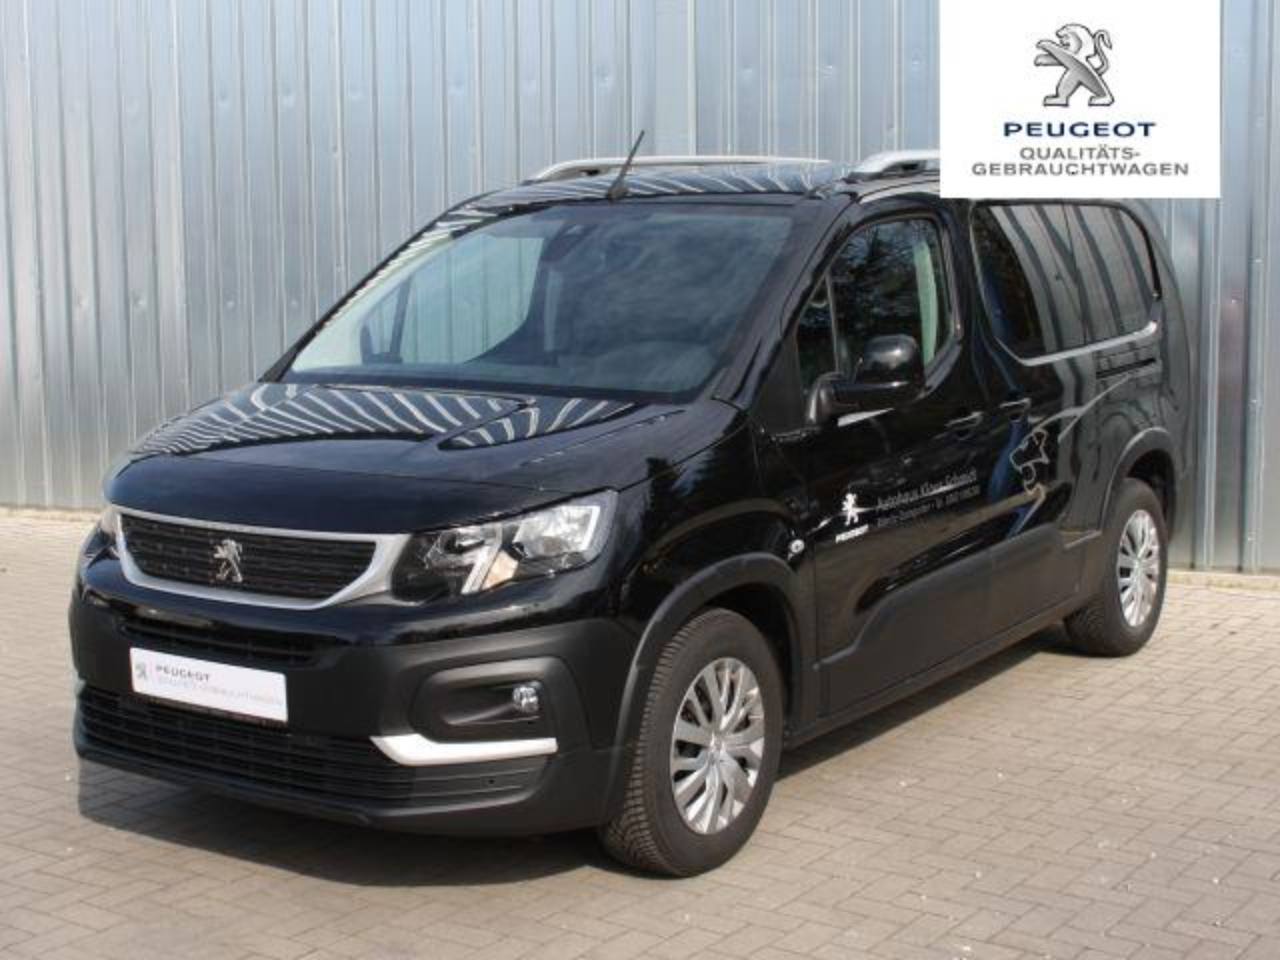 Peugeot Rifter BlueHDI 130 L2 EAT8 Active